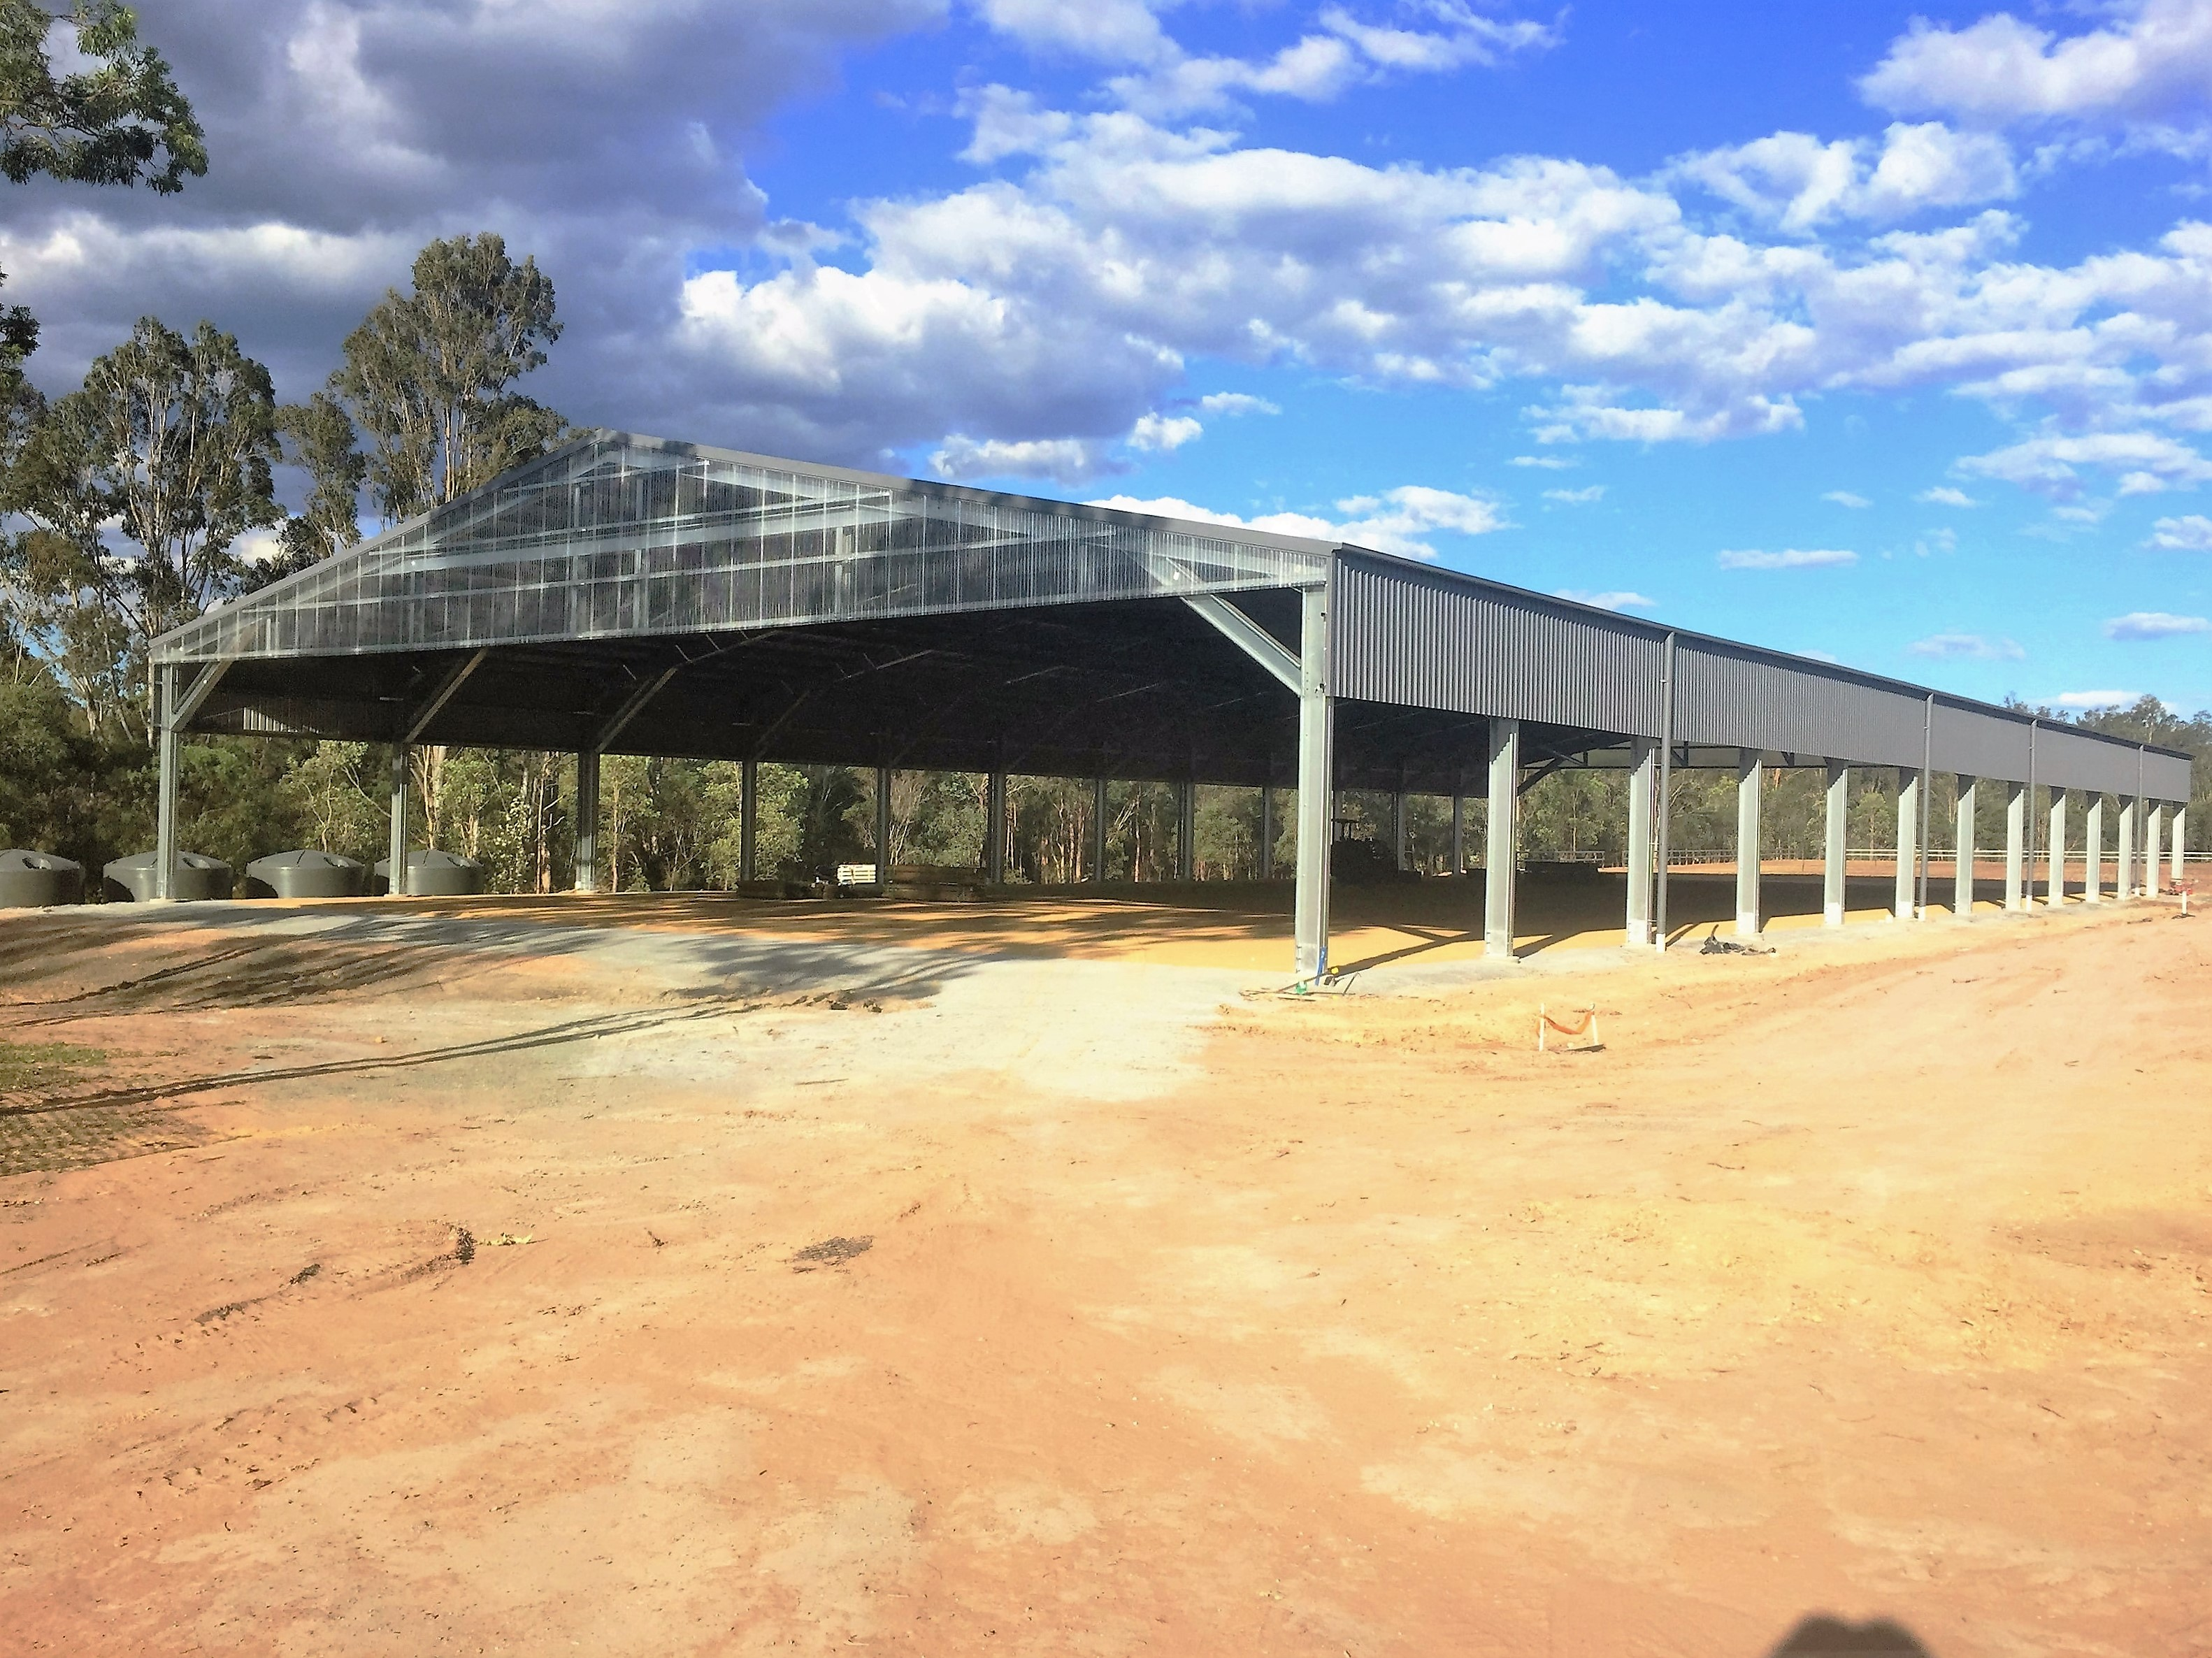 Equestrian Arena Roof Cover